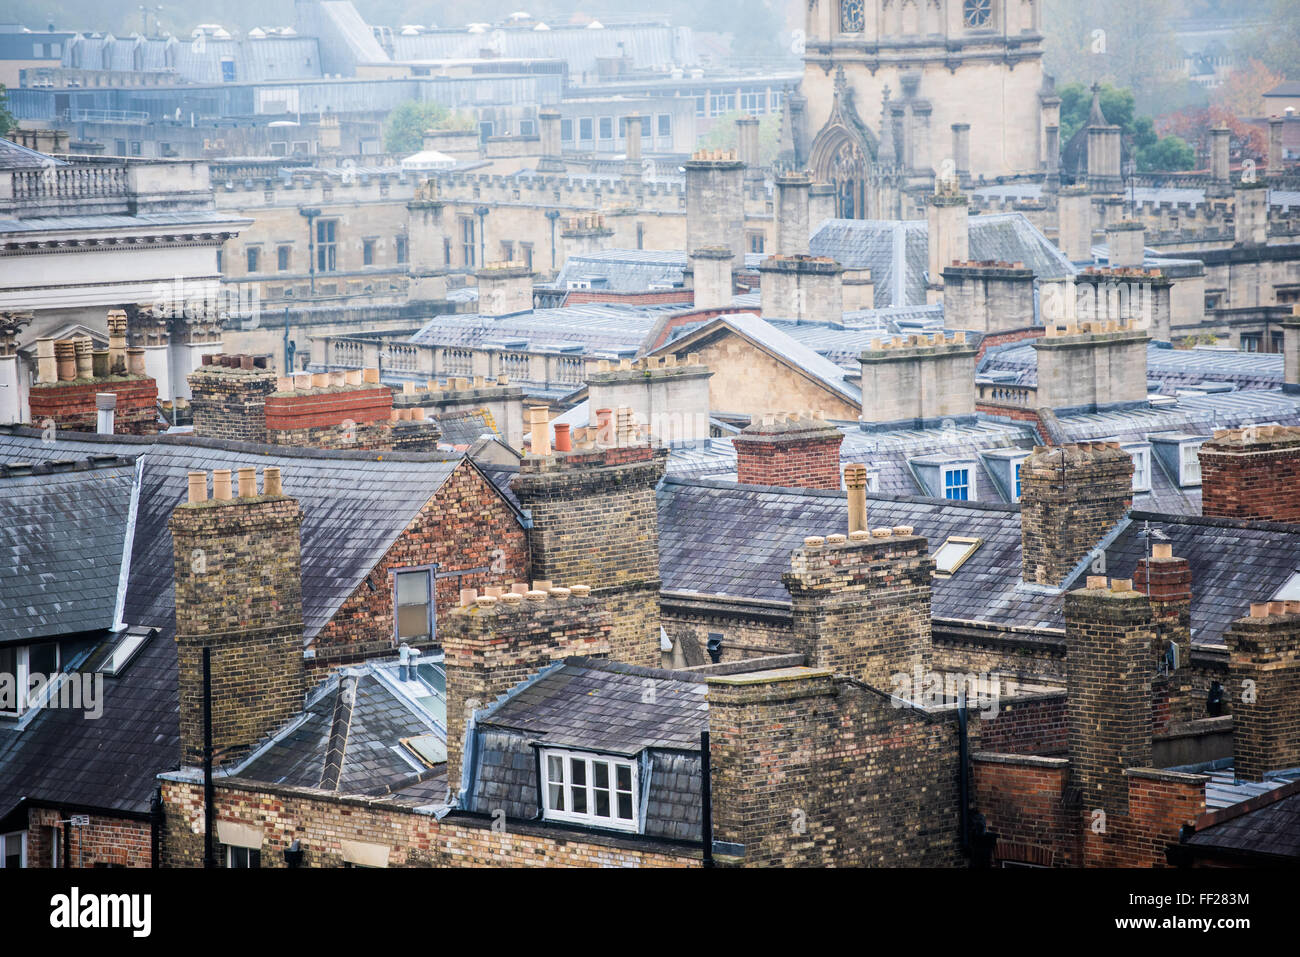 Oxford rooftops, Oxford, Oxfordshire, England, United Kingdom, Europe - Stock Image